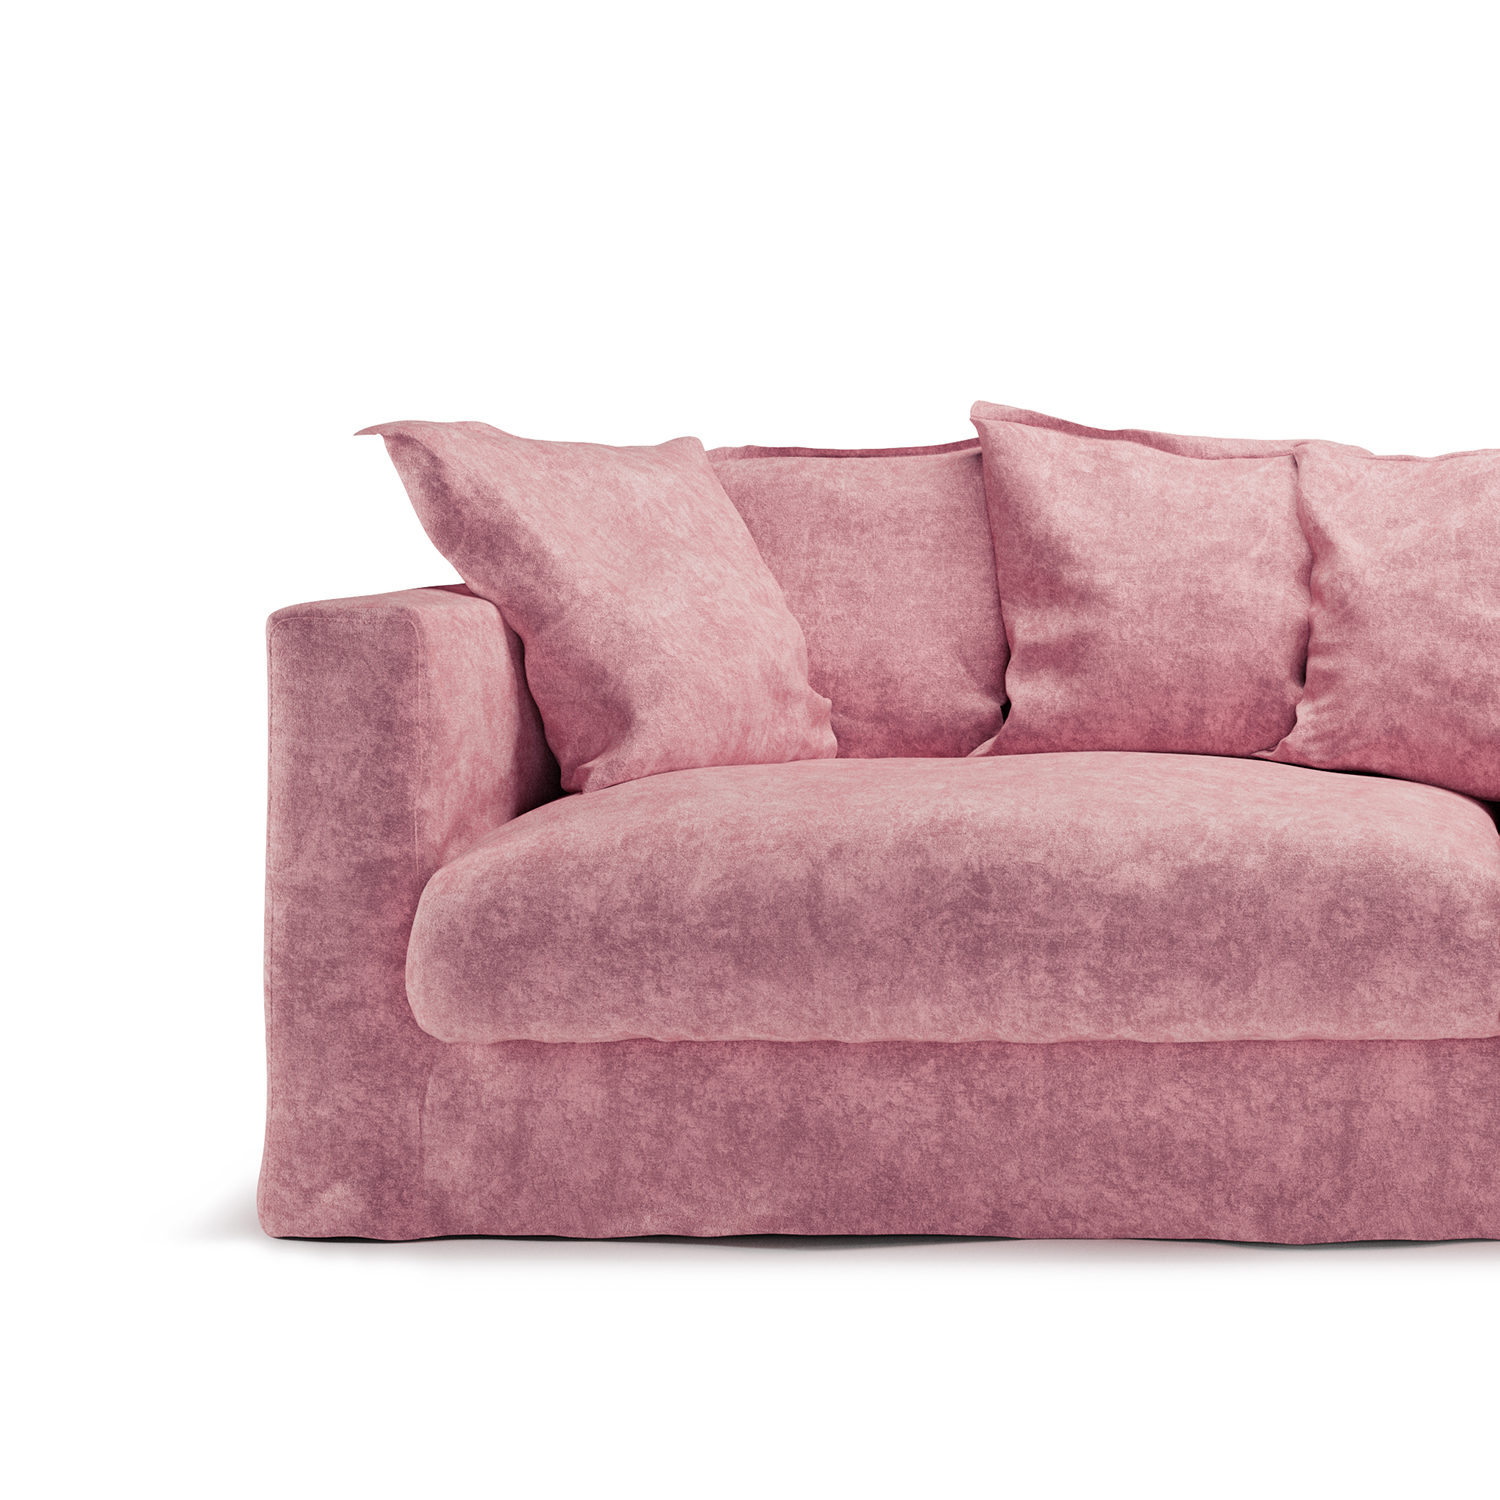 Le Grand Air 3-sitssoffa, Pastel Pink